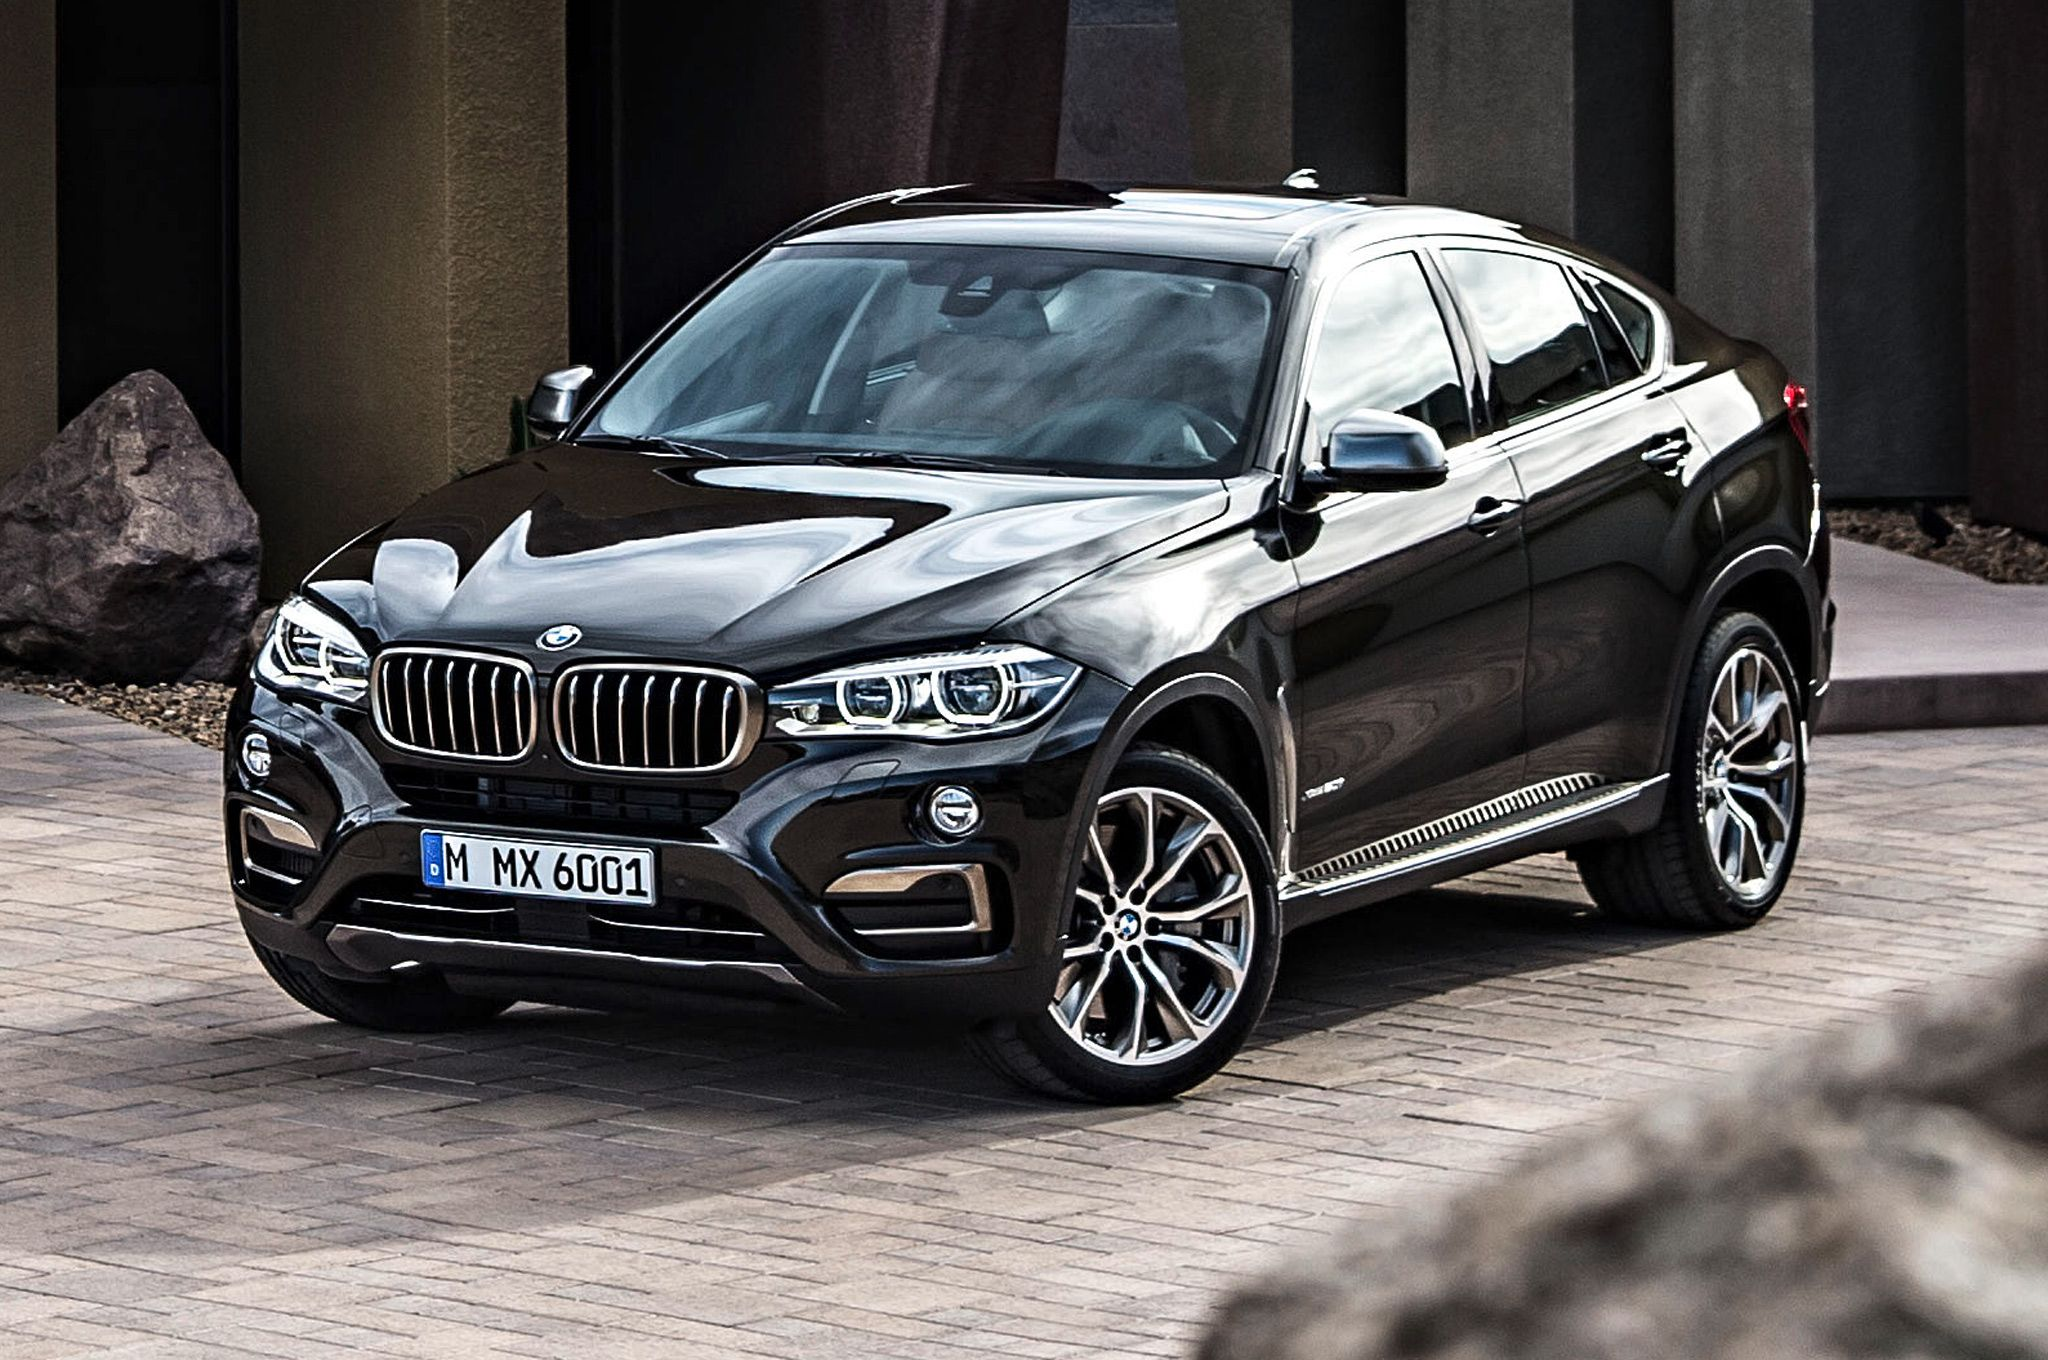 2015 bmw x6 front side view in driveway